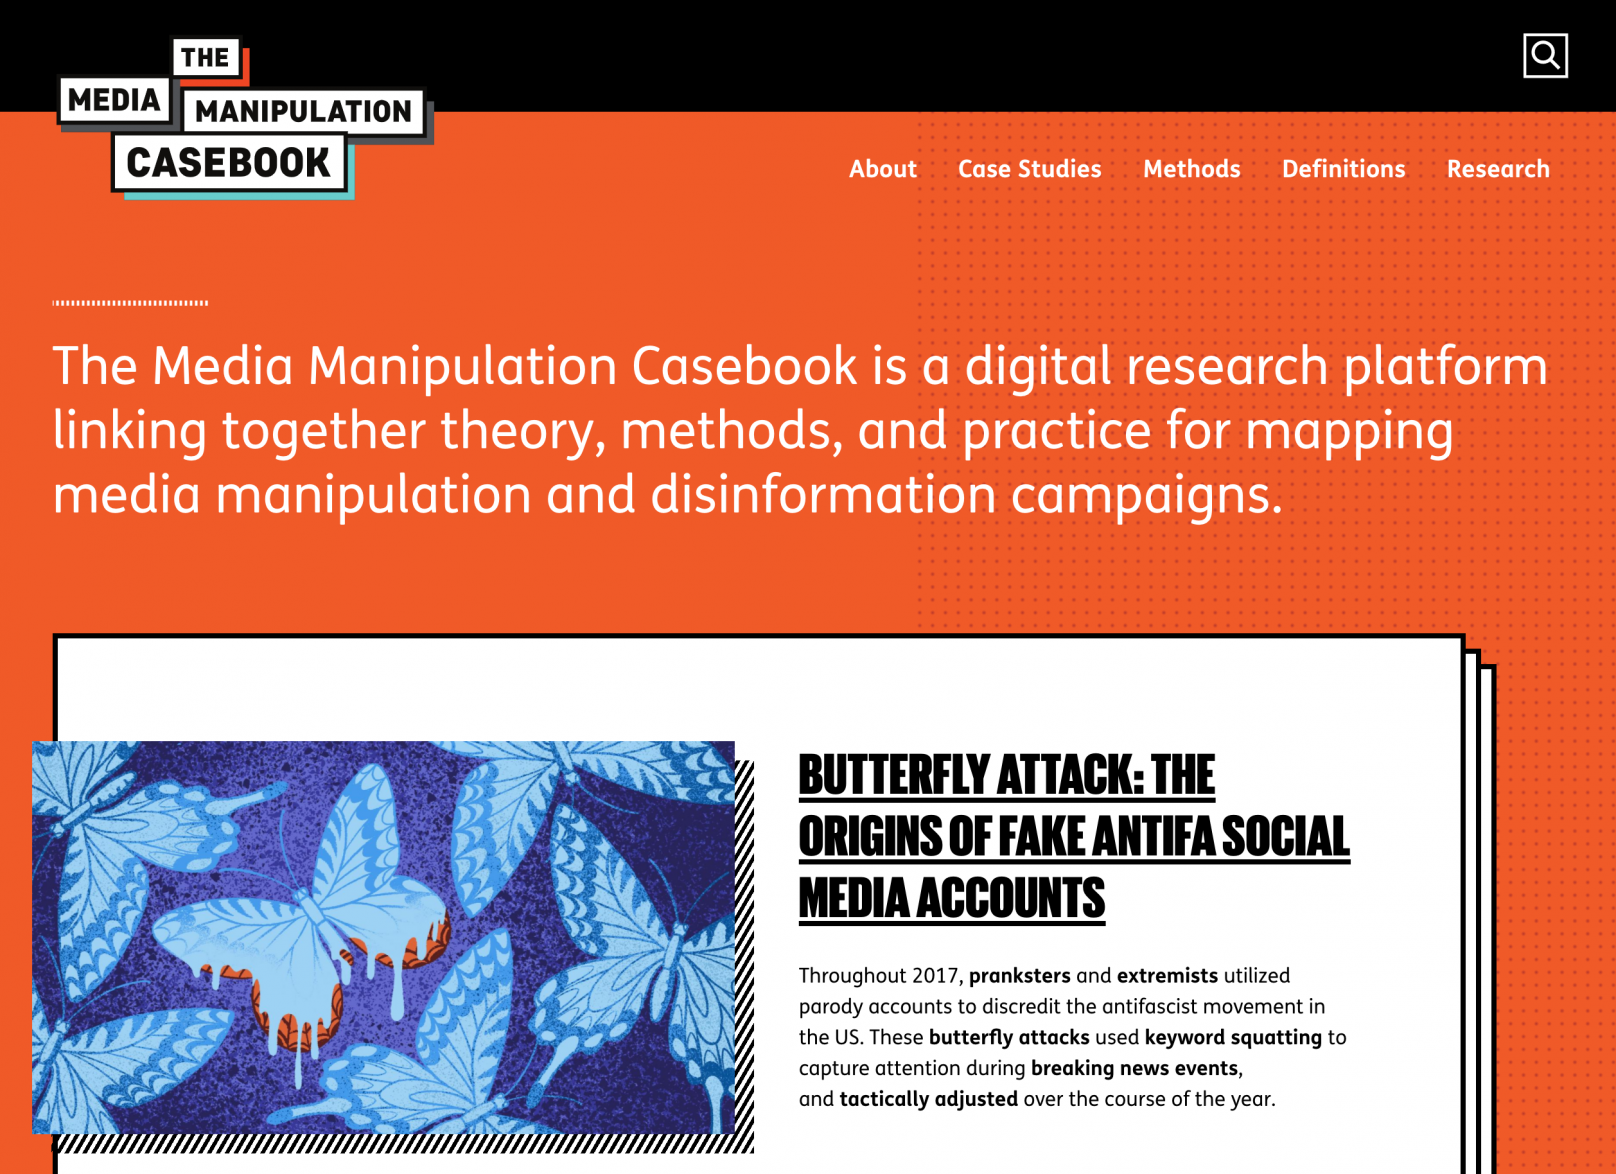 """The Media Manipulation Casebook is a digital research platform linking together theory, methods, and practice for mapping media manipulation and disinformation campaigns"""